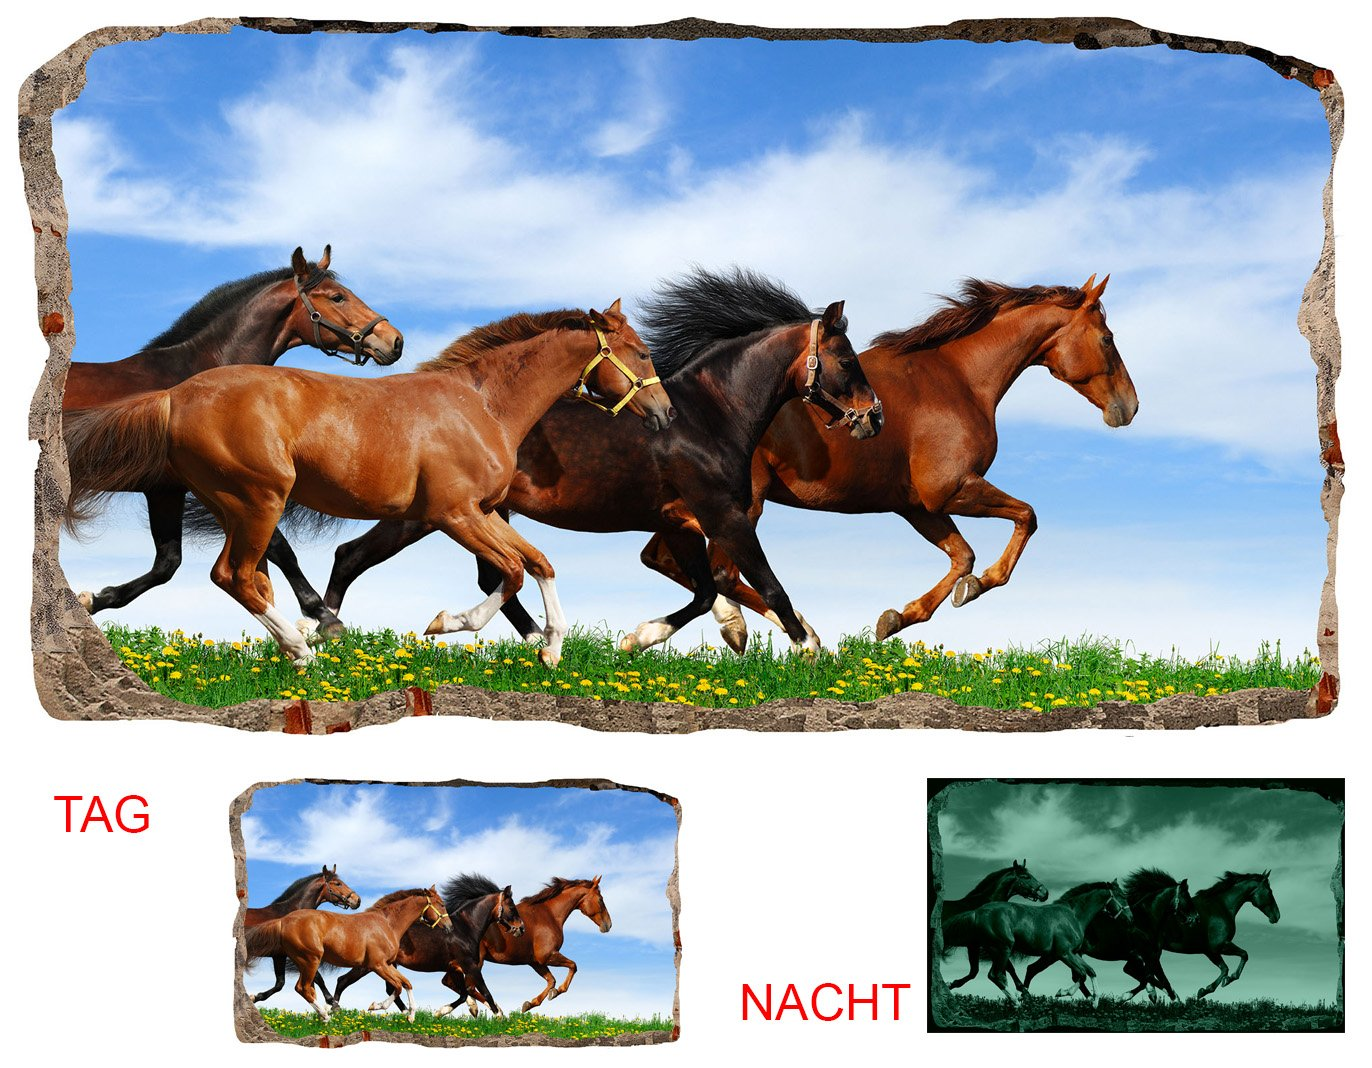 Startonight 3D Mural Wall Art Photo Decor Horses Running Amazing Dual View Surprise Large Wall Mural Wallpaper for Living Room or Bedroom Horses Wall Art 120 x 220 cm